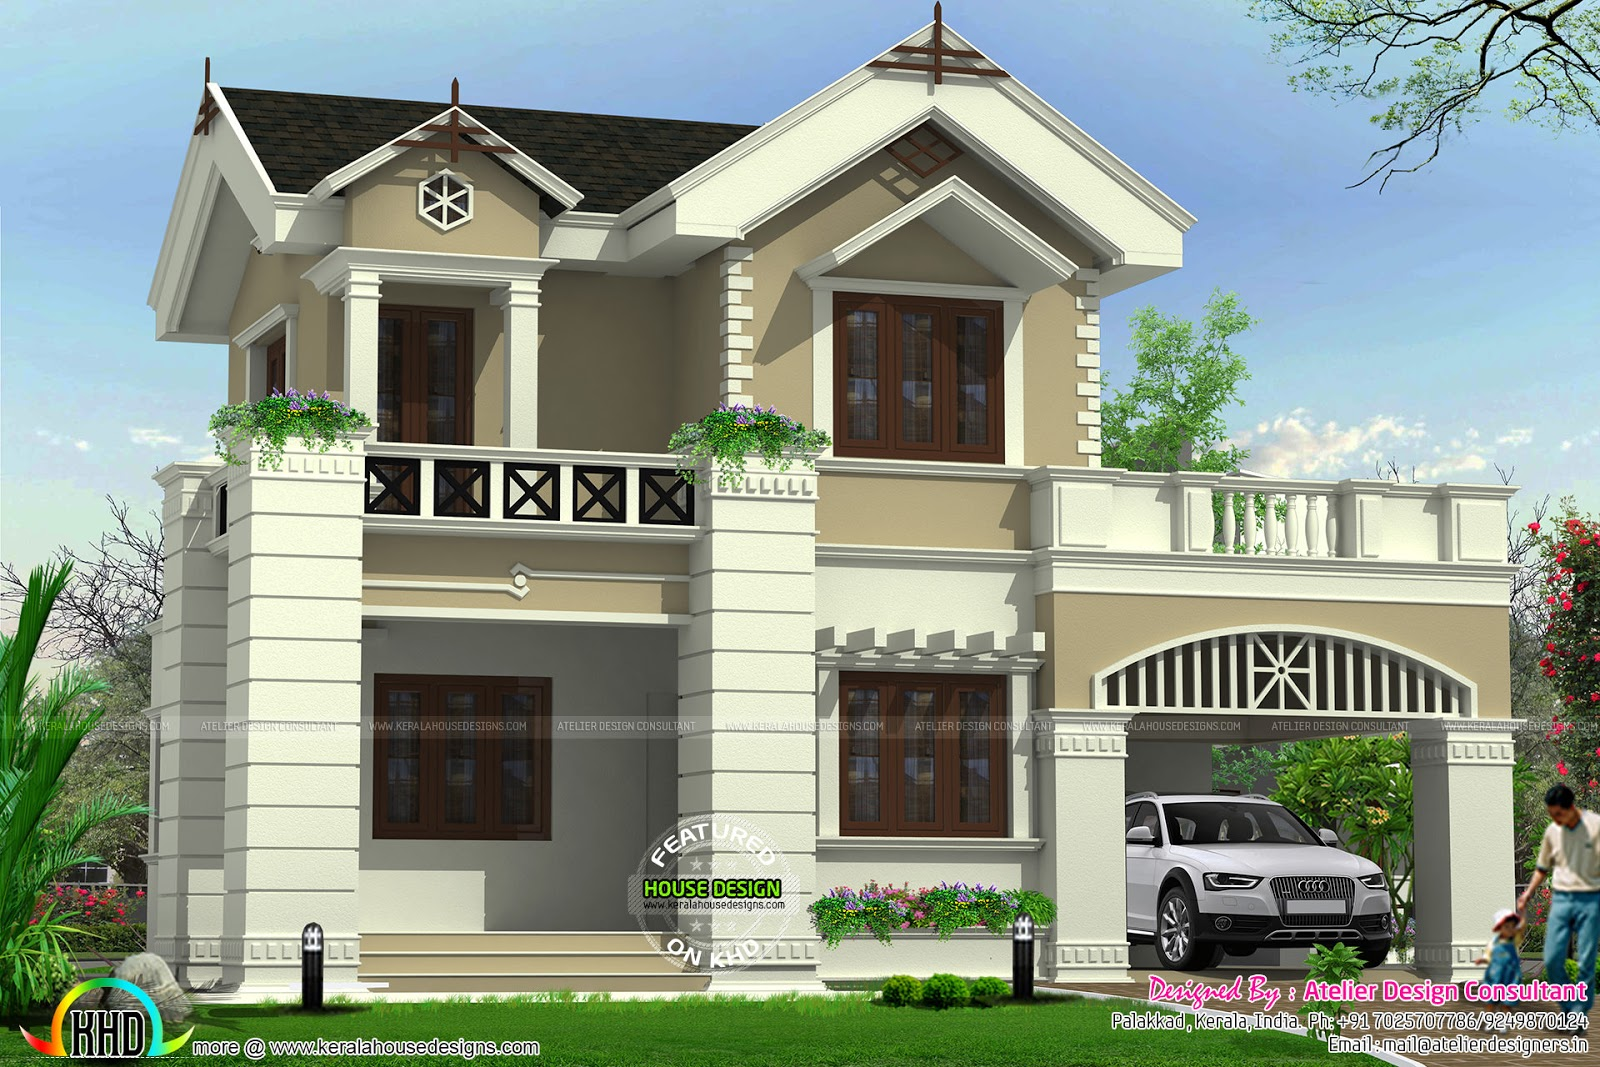 Cute victorian model home kerala home design and floor plans for Photos of cute houses